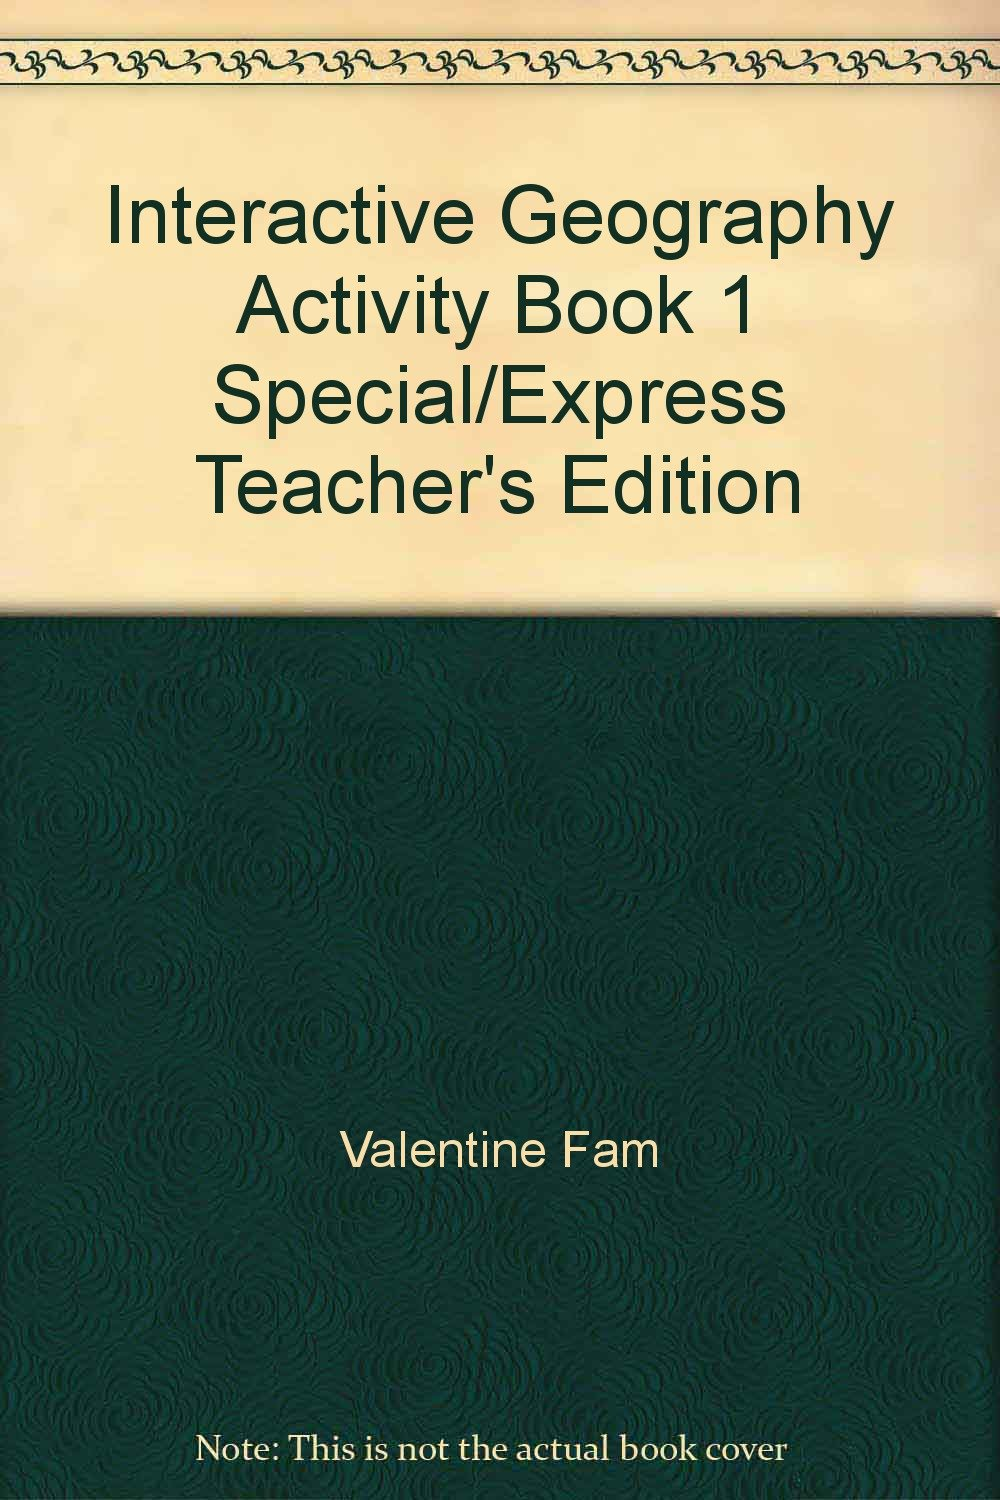 Interactive Geography Activity Book 1 Special/Express Teacher's Edition PDF